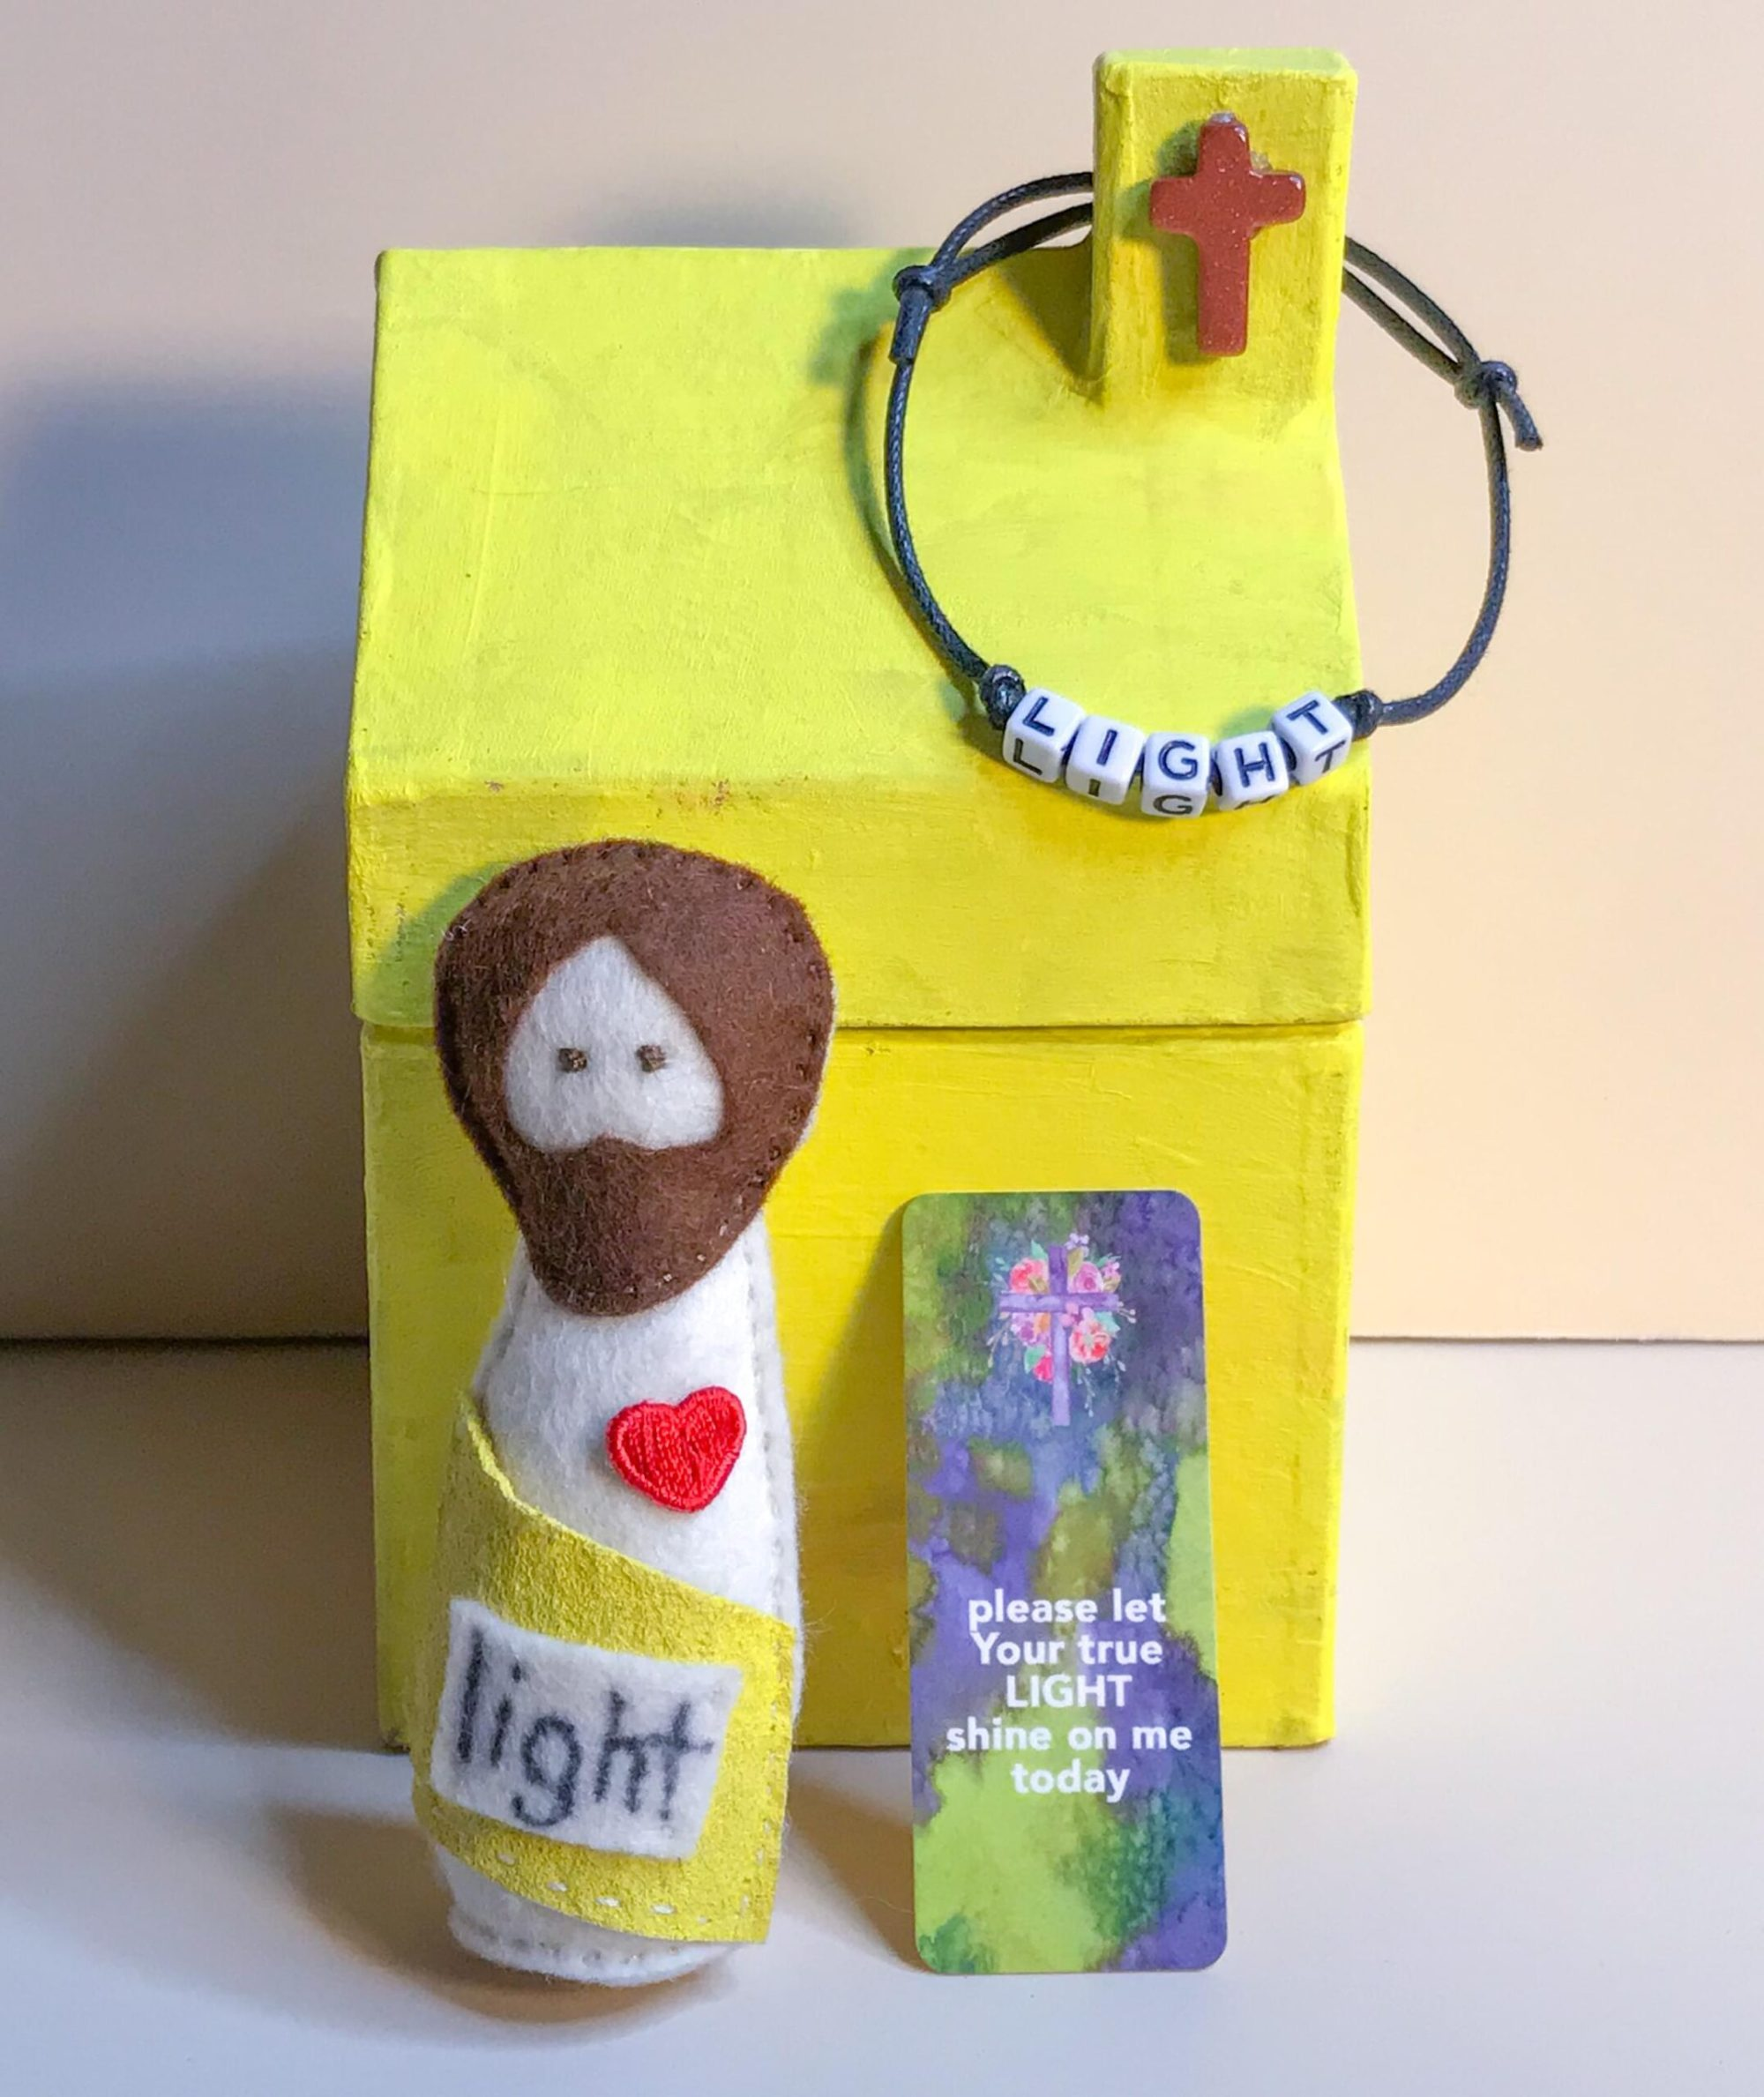 Pocket_jesus_doll_light_02.min